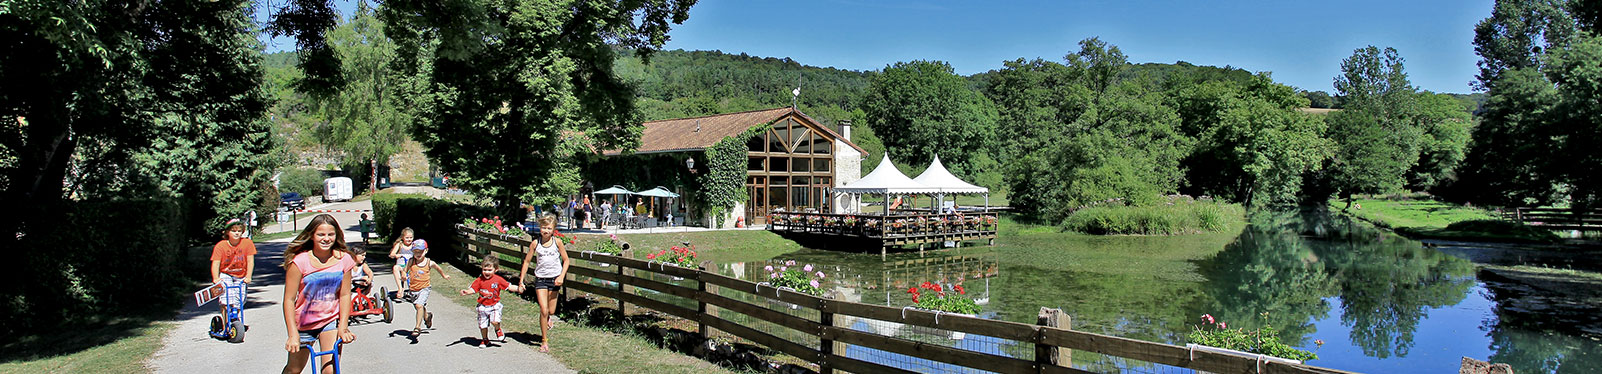 Camping france 5 stars champagne ardenne champagne for Camping champagne ardennes avec piscine